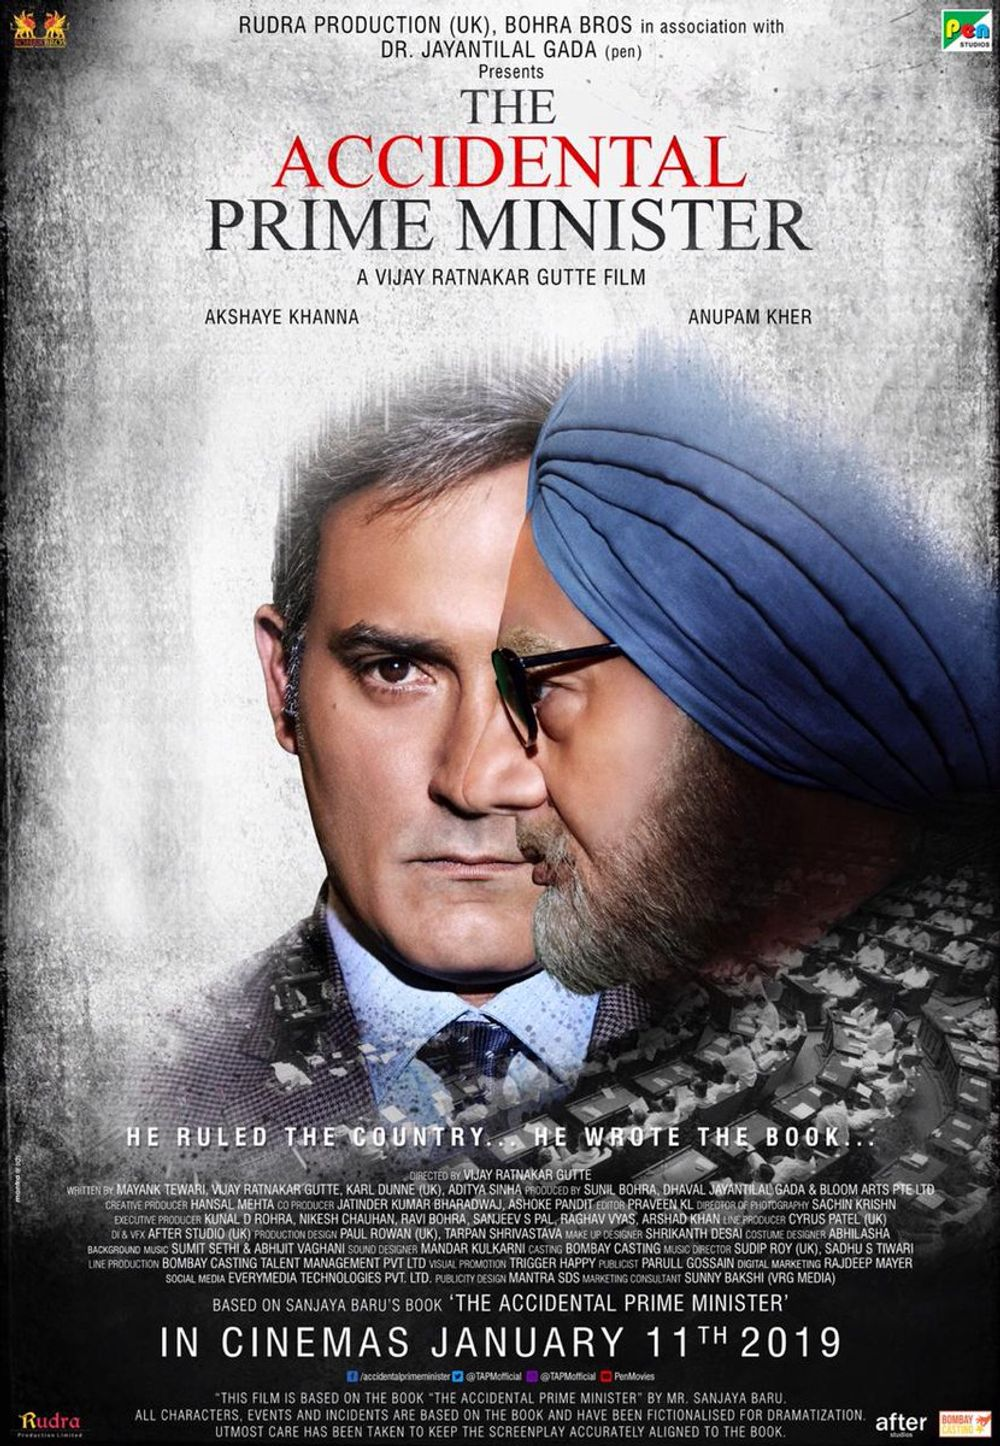 1-The Accidental Prime Minister